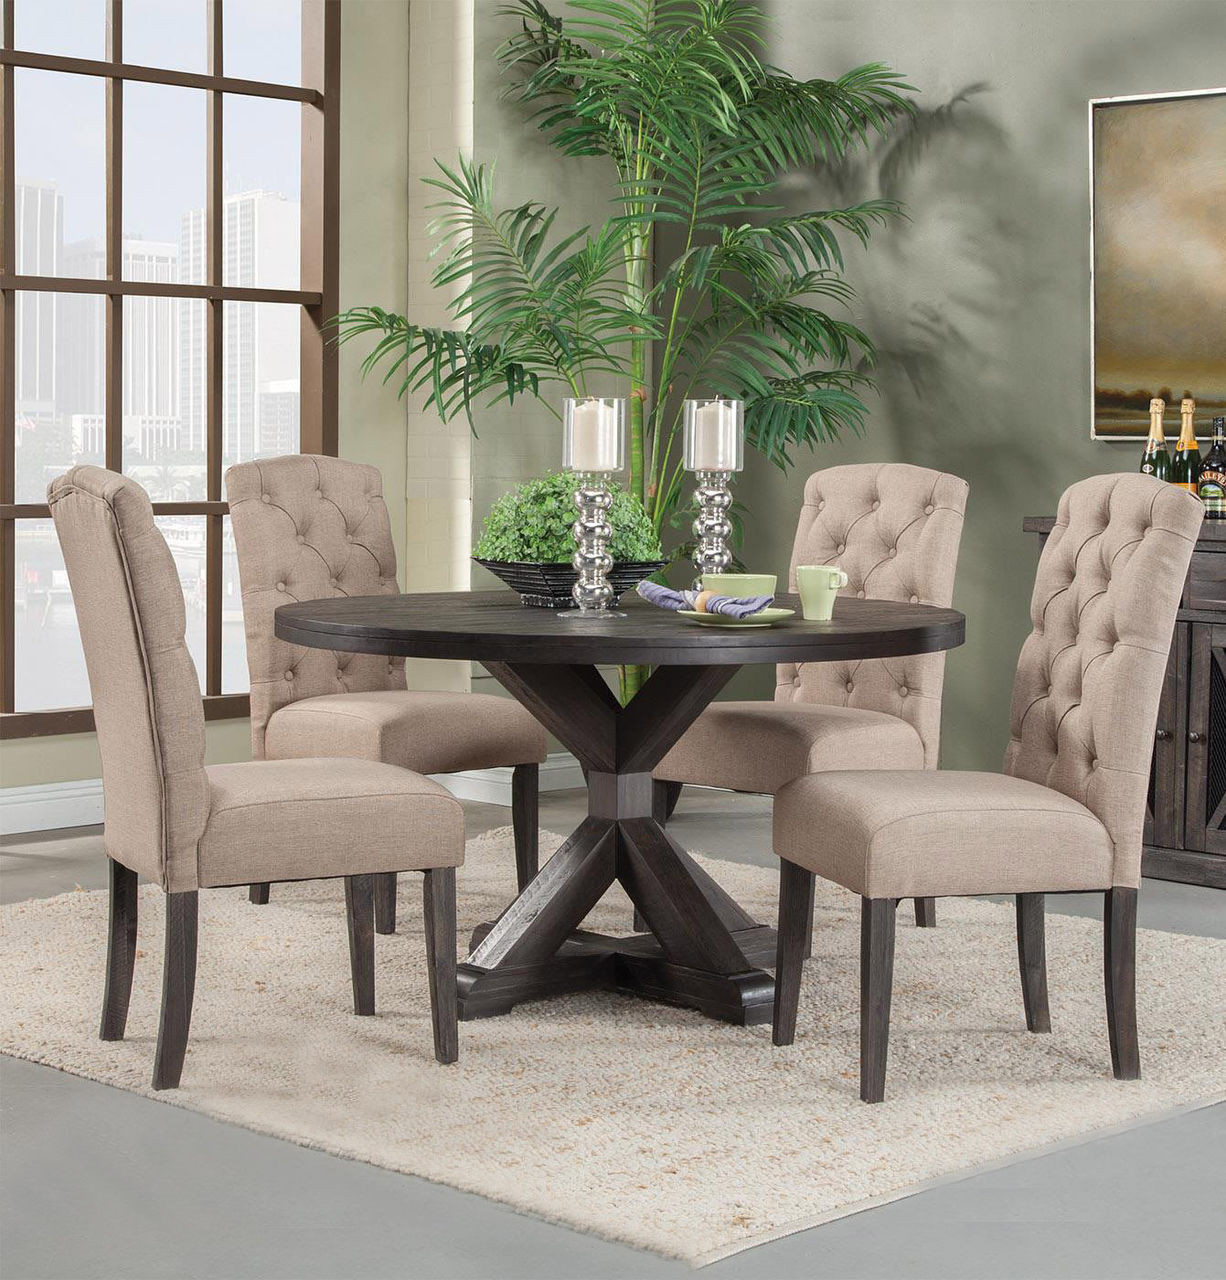 "Round Breakfast Table Set: Alpine Newberry 54"" Round Dining Room Table Set In"